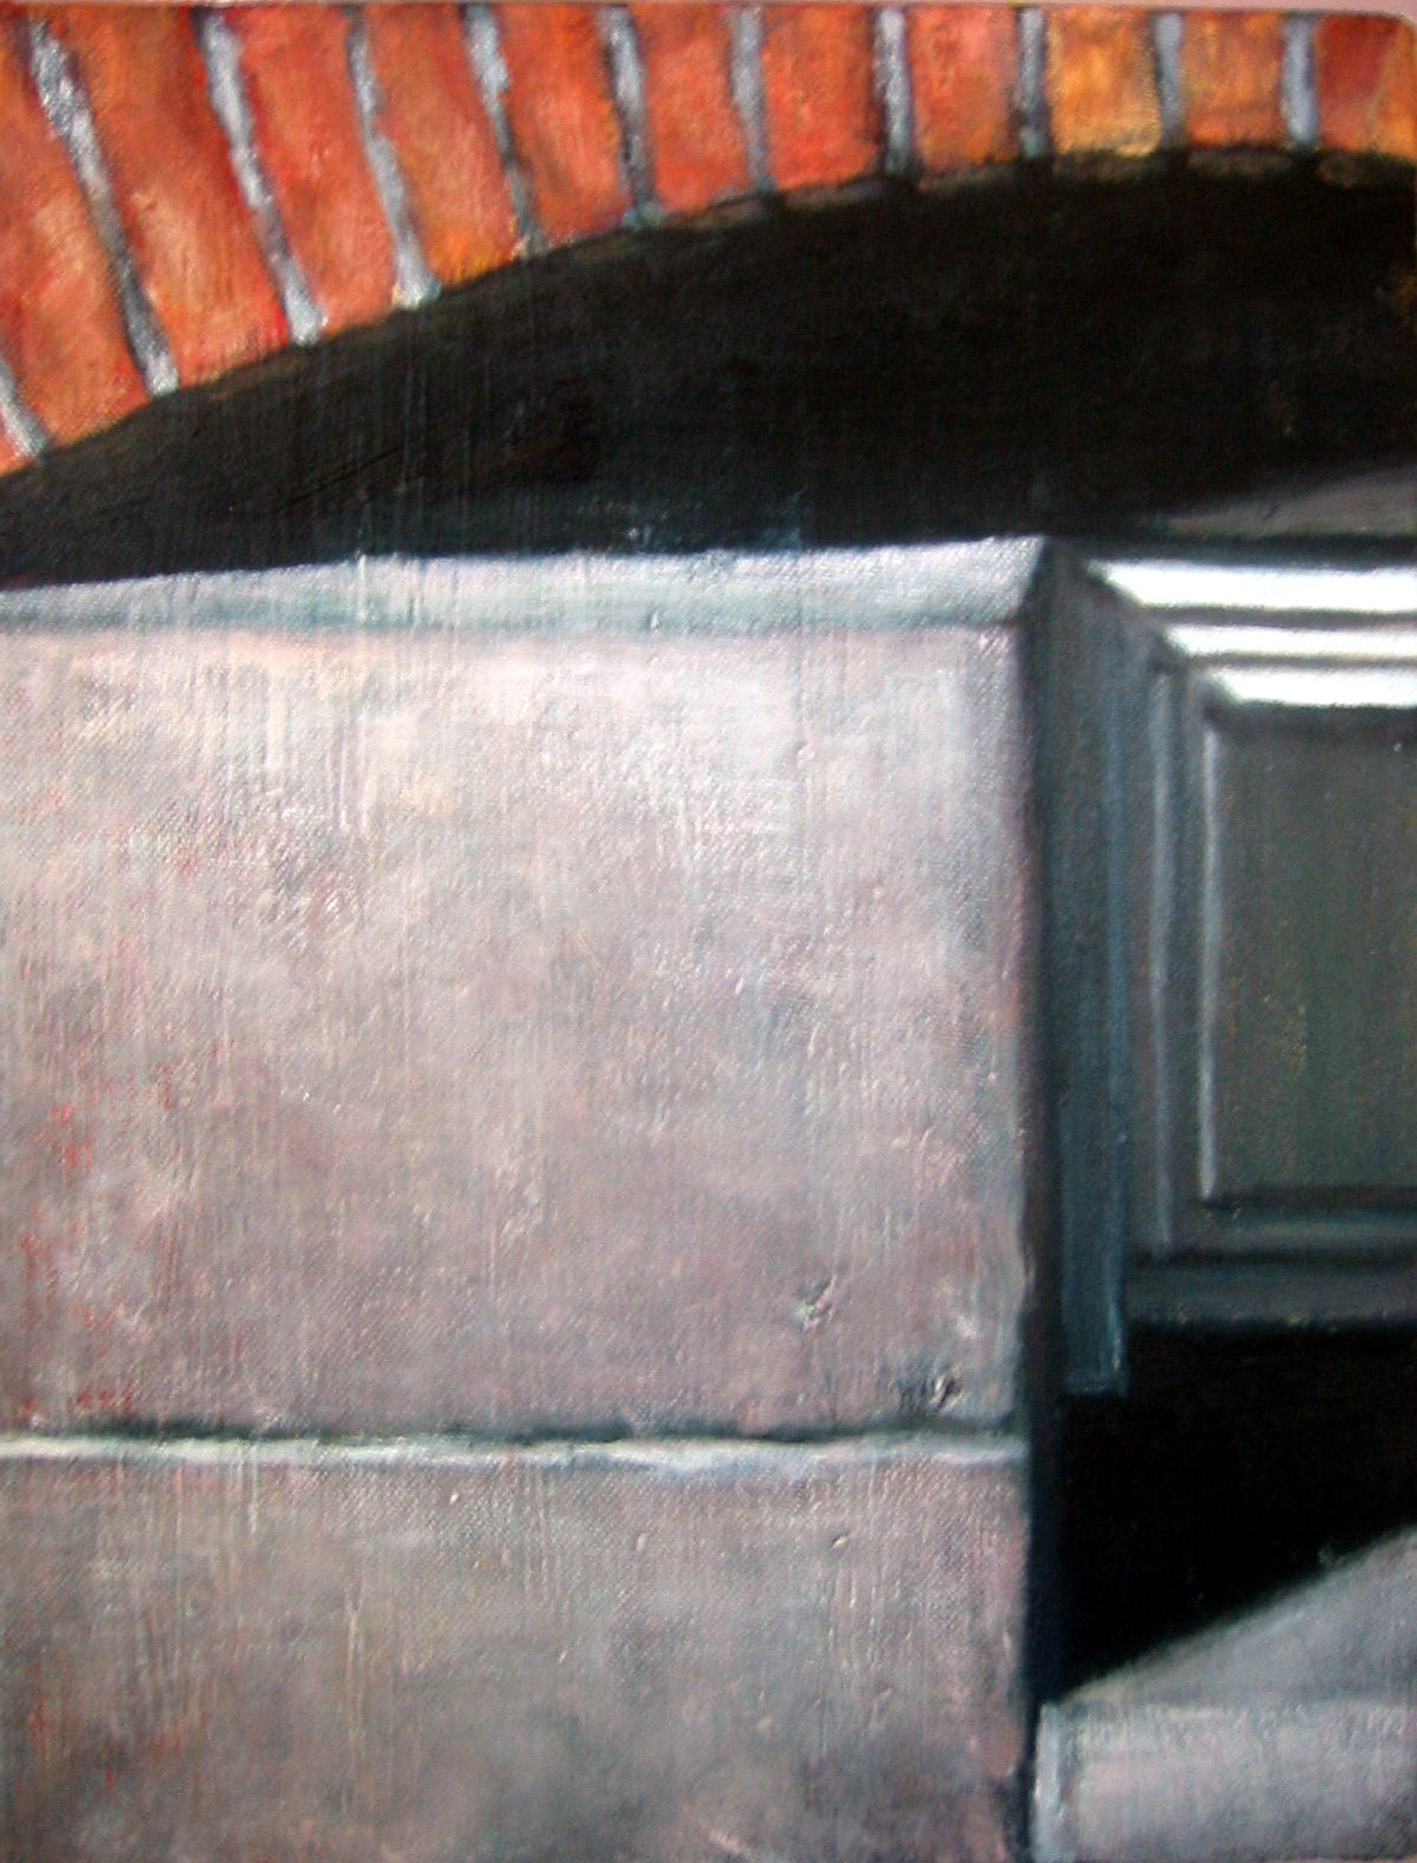 Exterior with cellar window  Oil on canvas  35 x 27 cm  2004